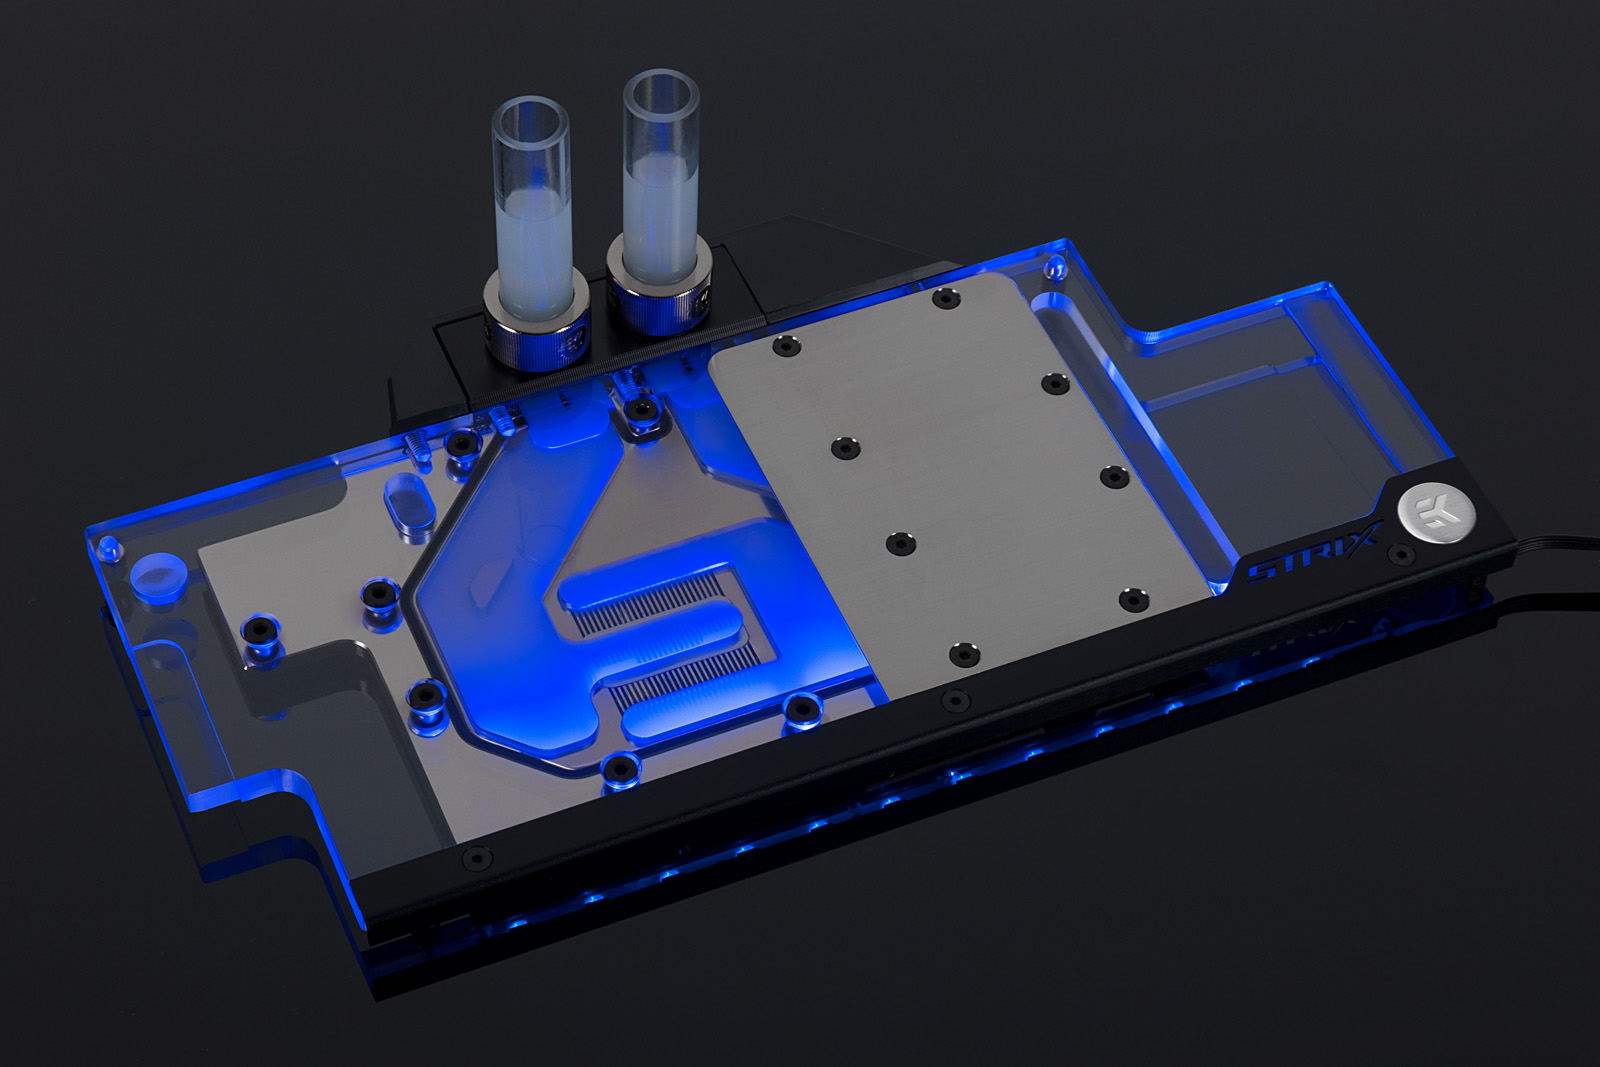 EK® launches an updated RGB Full-Cover water block for the ASUS® ROG